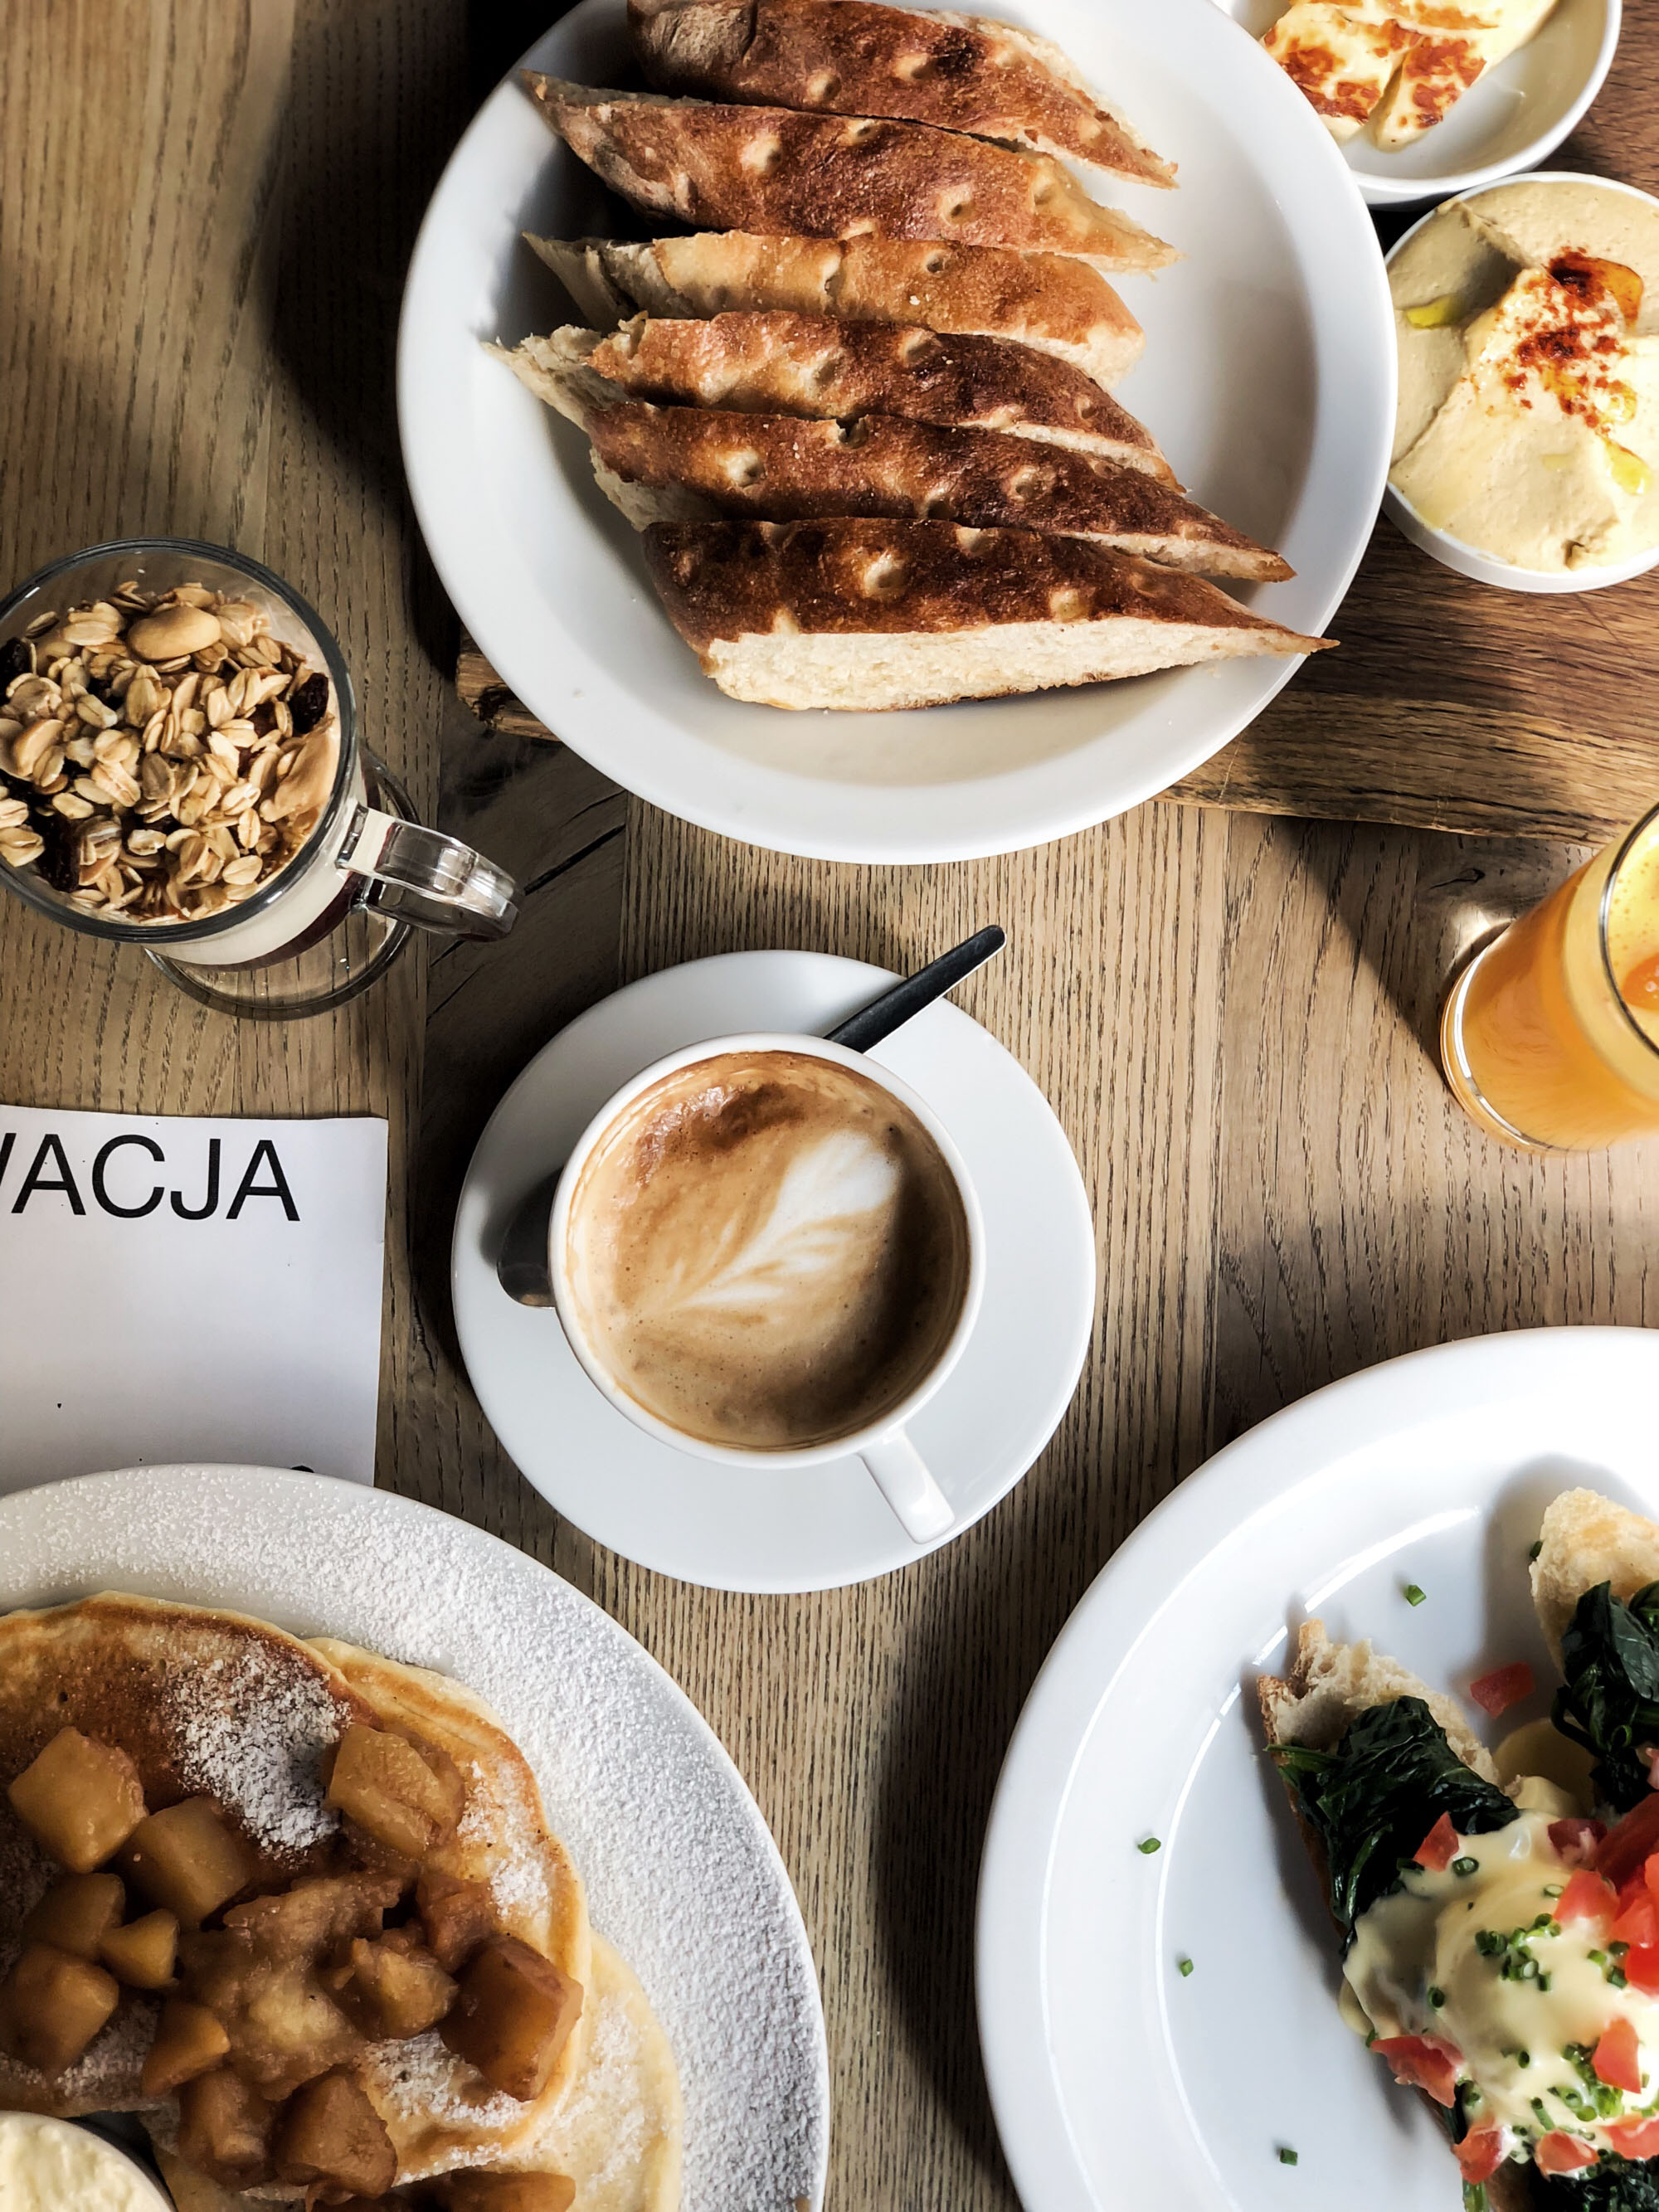 Where to eat like a real blogger in Krakau